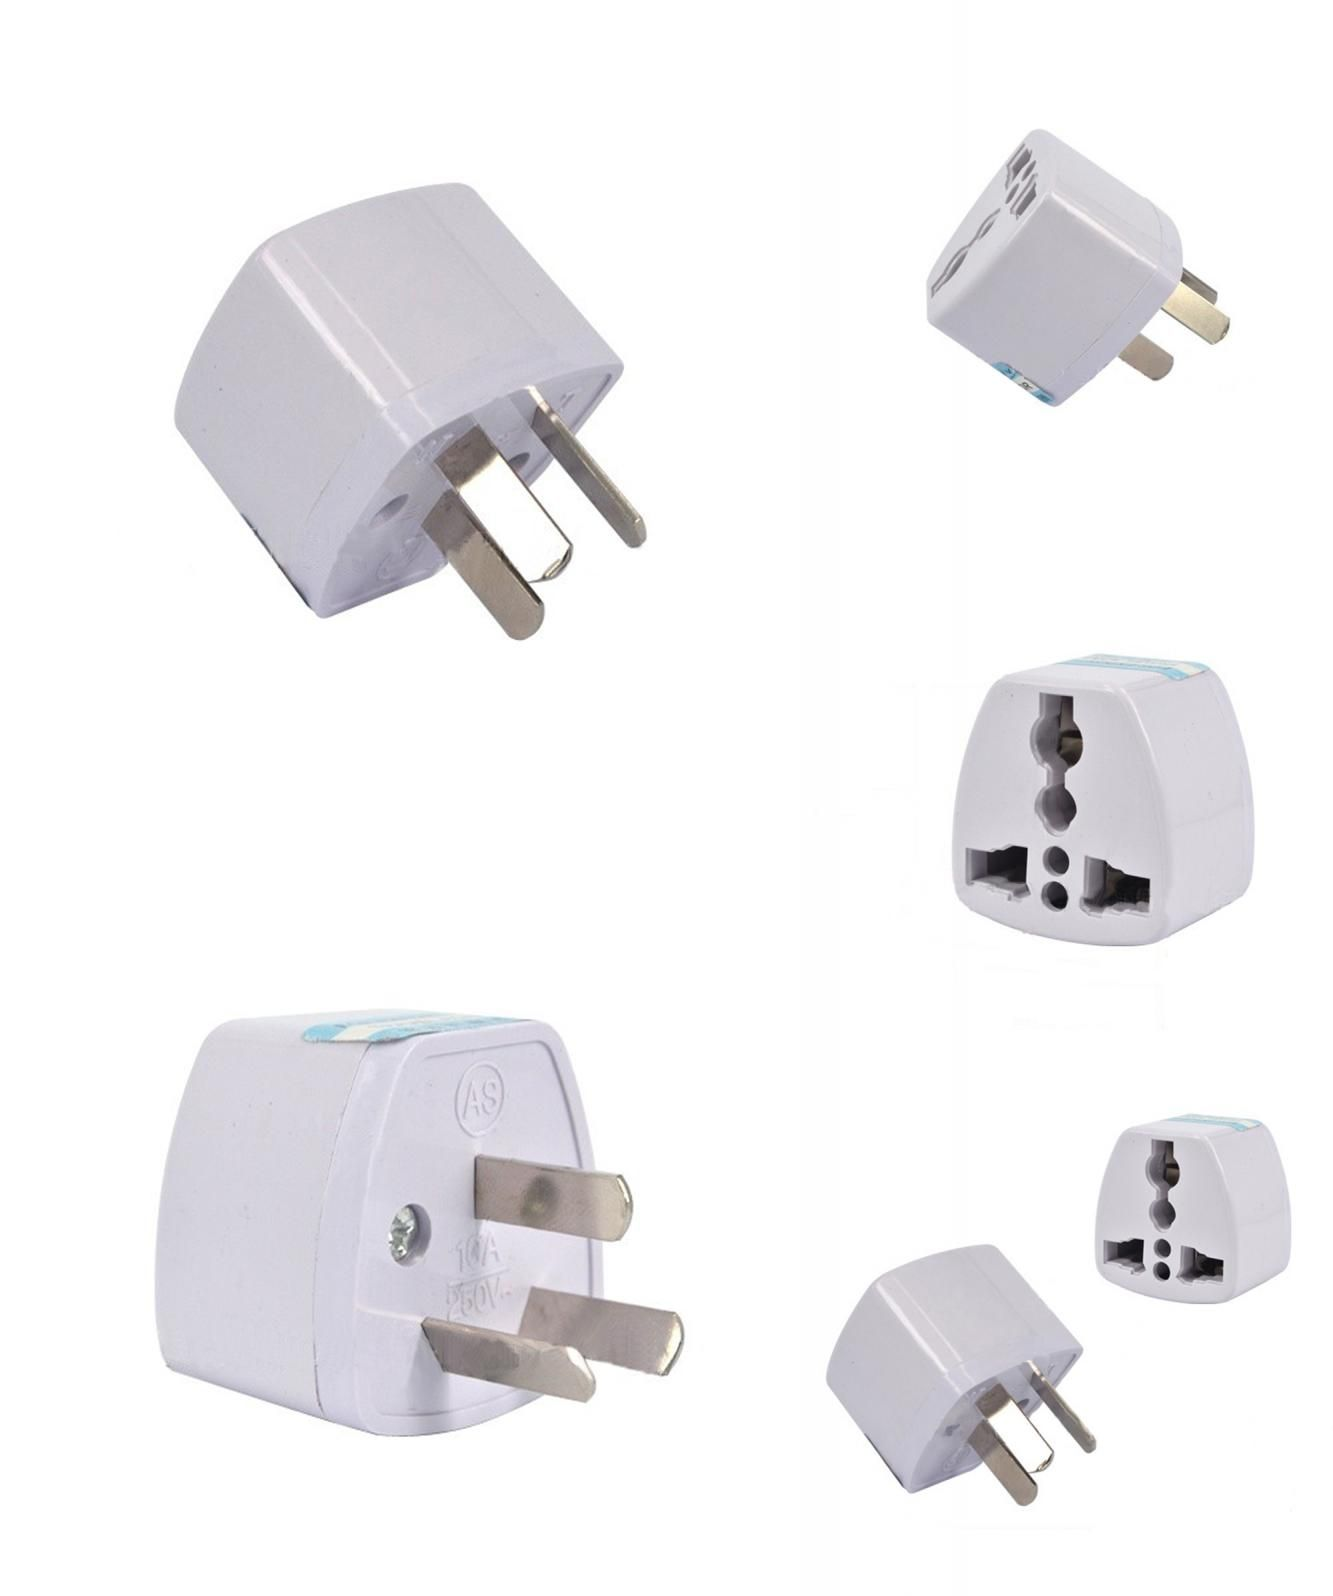 Visit To Buy High Quality Universal Power Adapter Travel Adaptor 3 Double Poles 2p Elcb Earth Leakage Circuit Breaker Diy Electricals Pin Au Converter